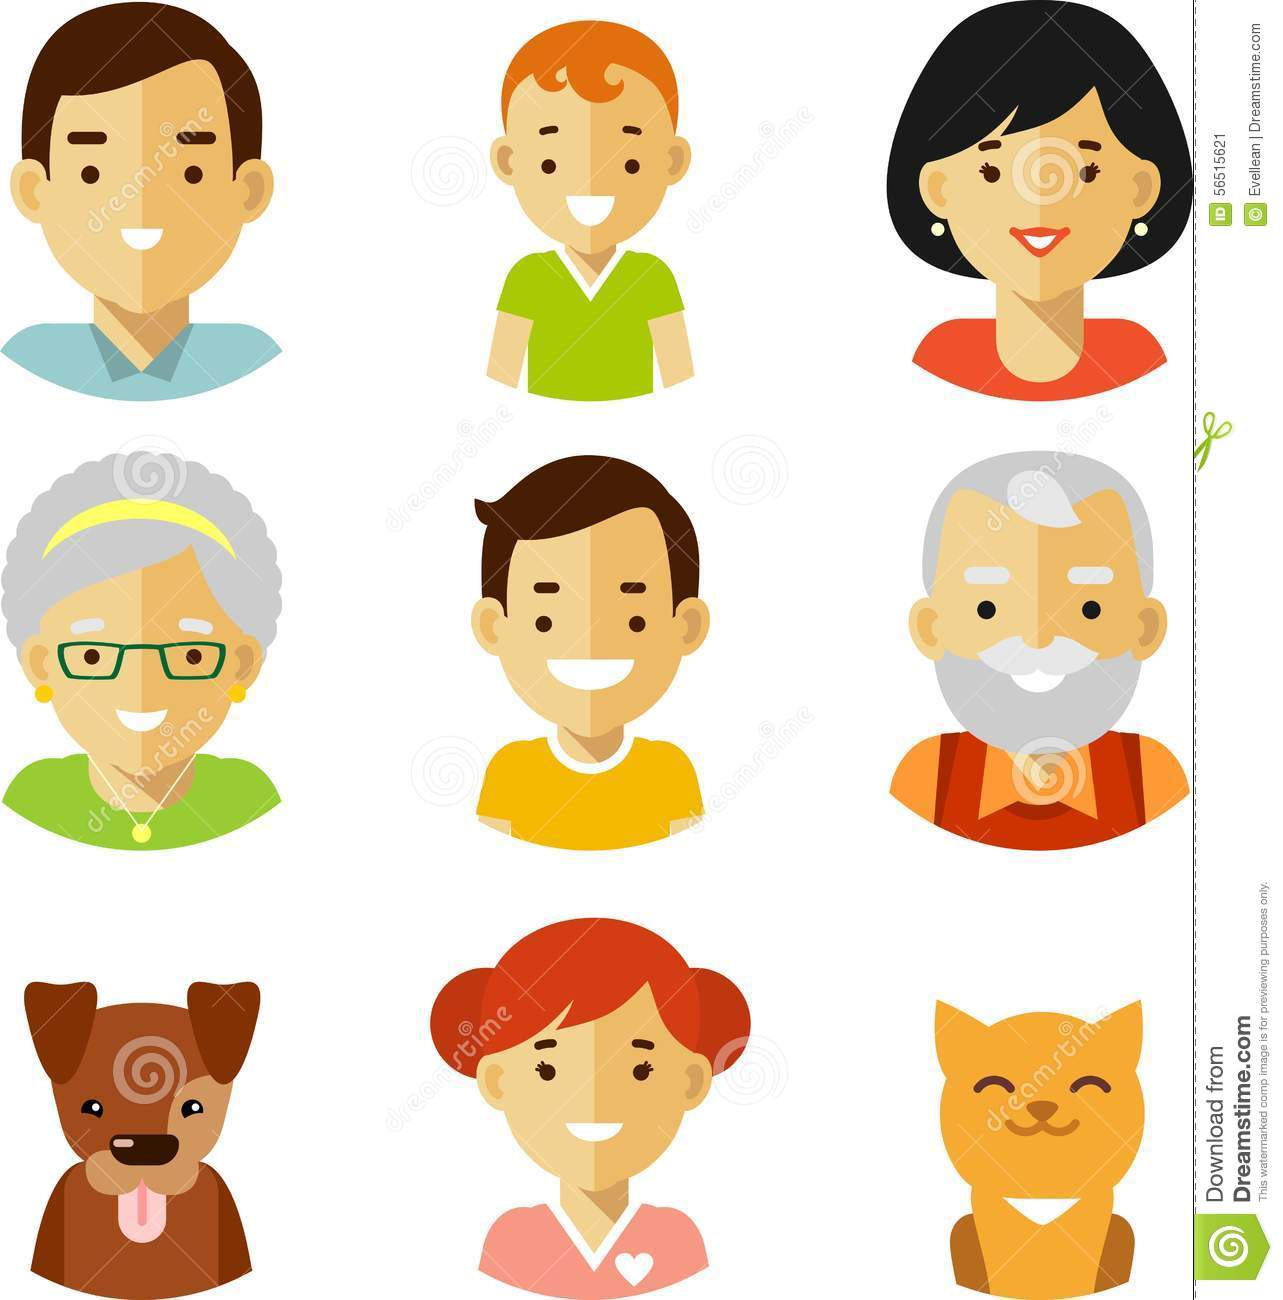 set-seven-family-members-avatars-icons-flat-style-happy-people-two-pets-white-background-56515621.jpg